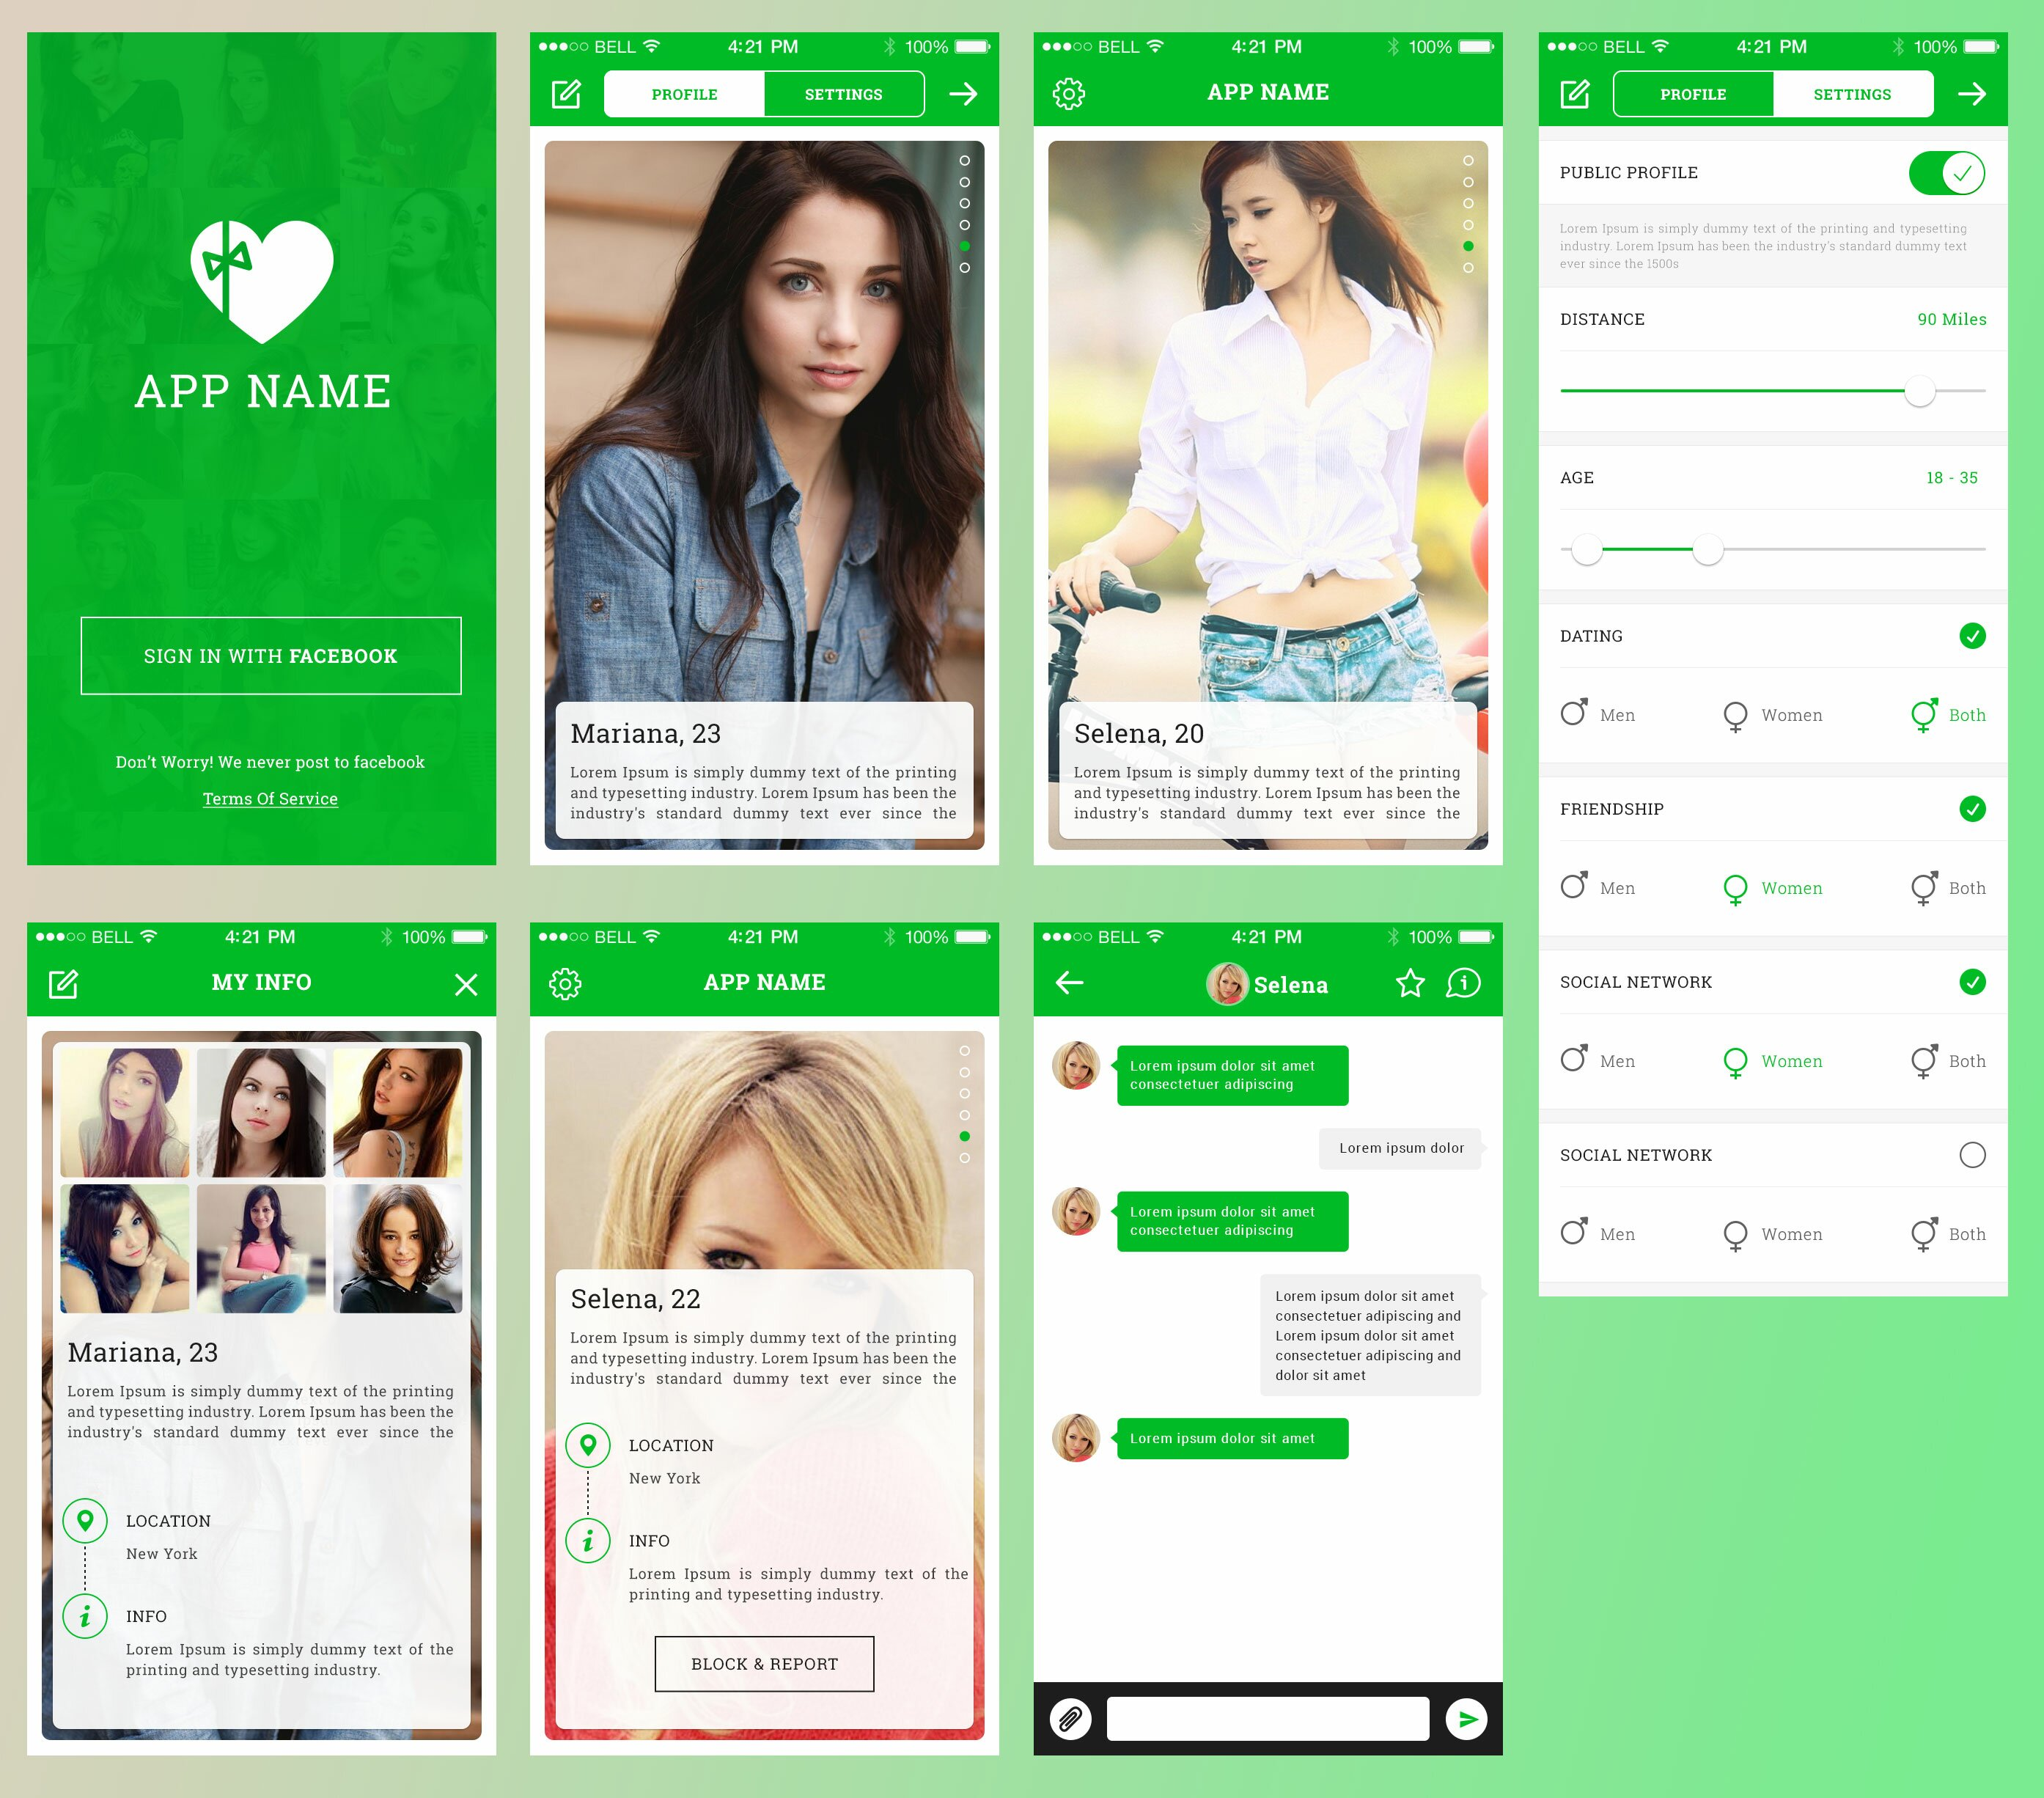 P dating app in Melbourne